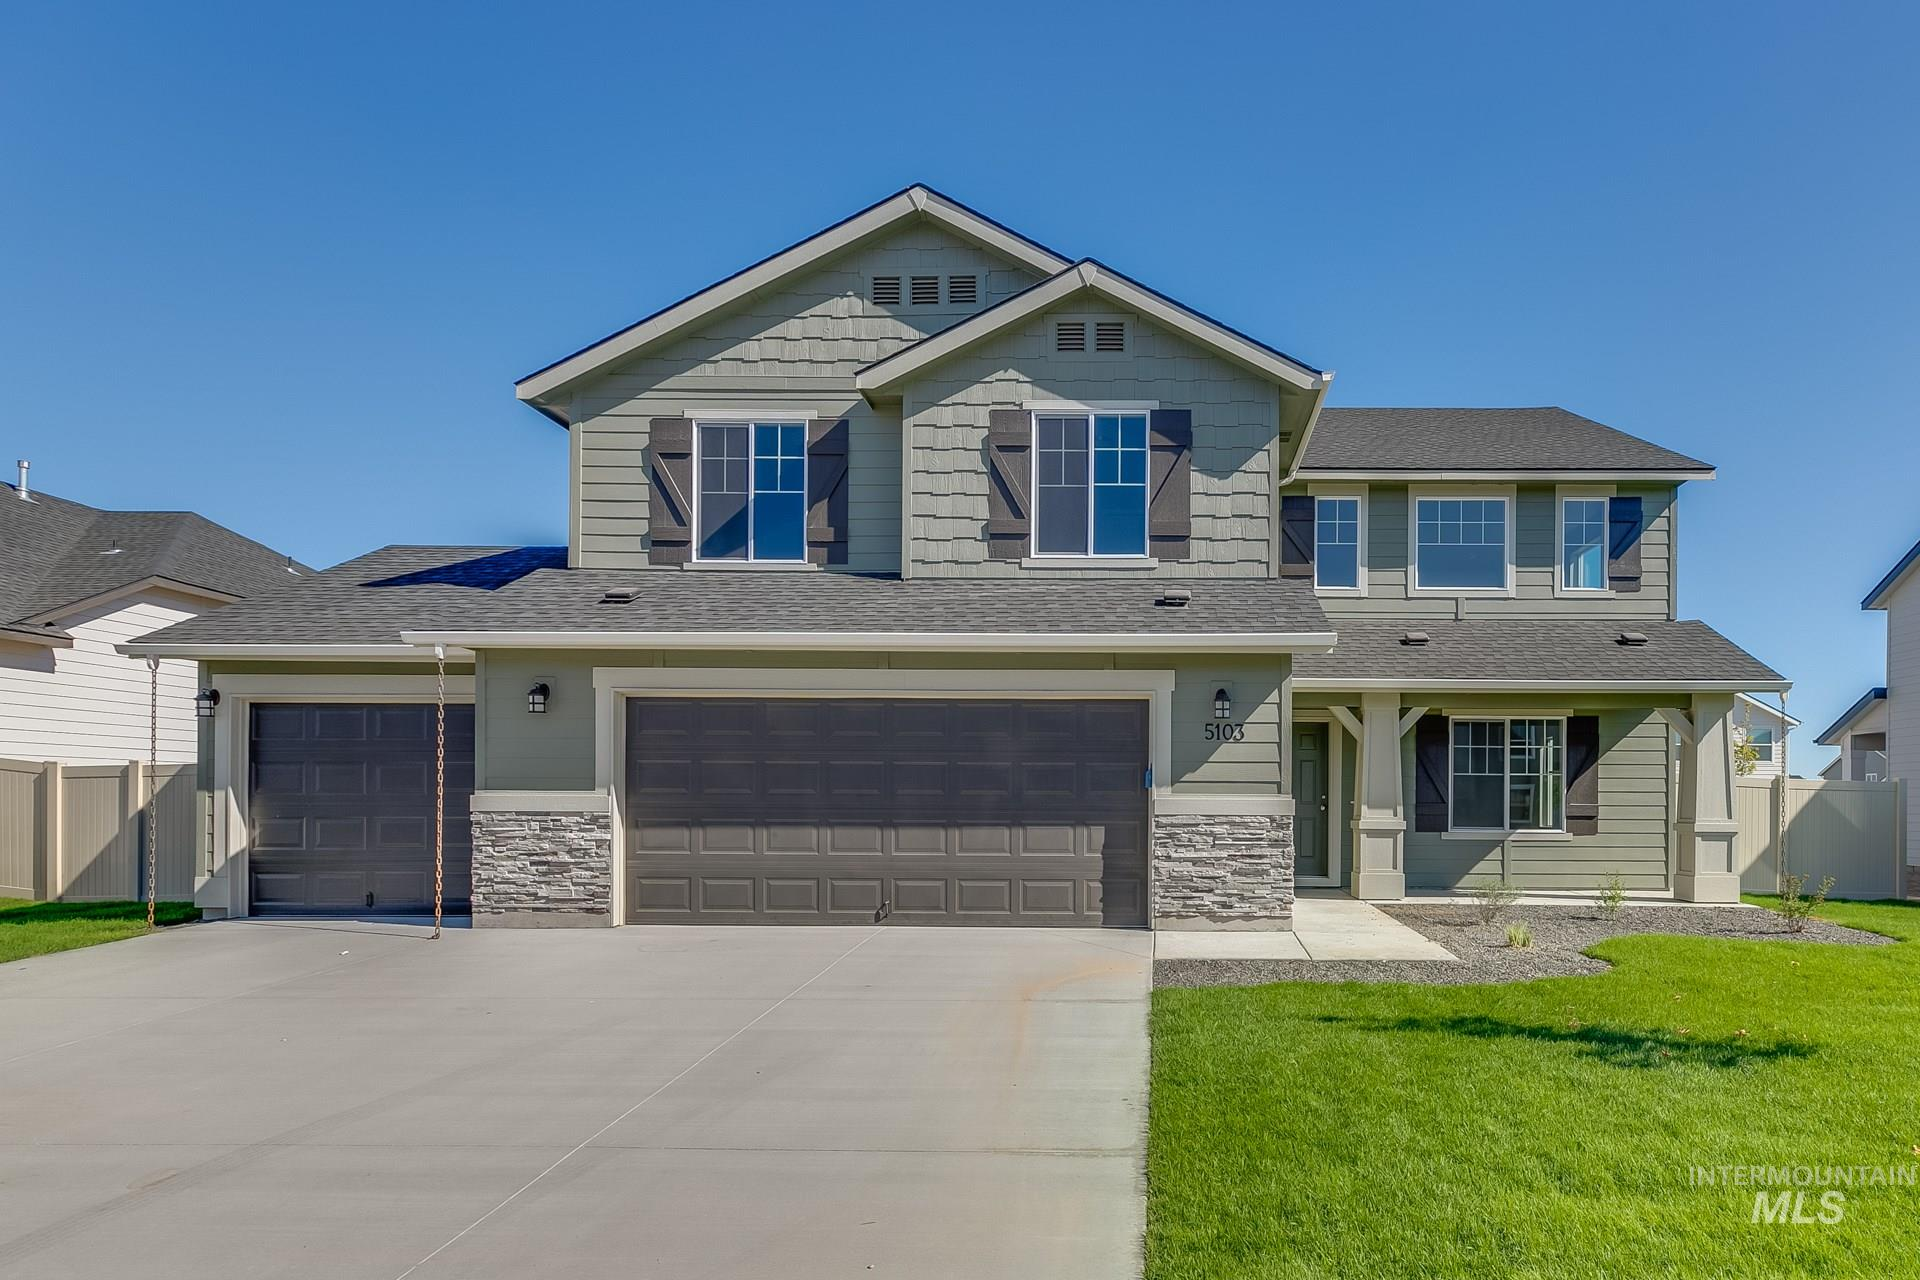 17831 N Harpster Way Property Photo - Nampa, ID real estate listing